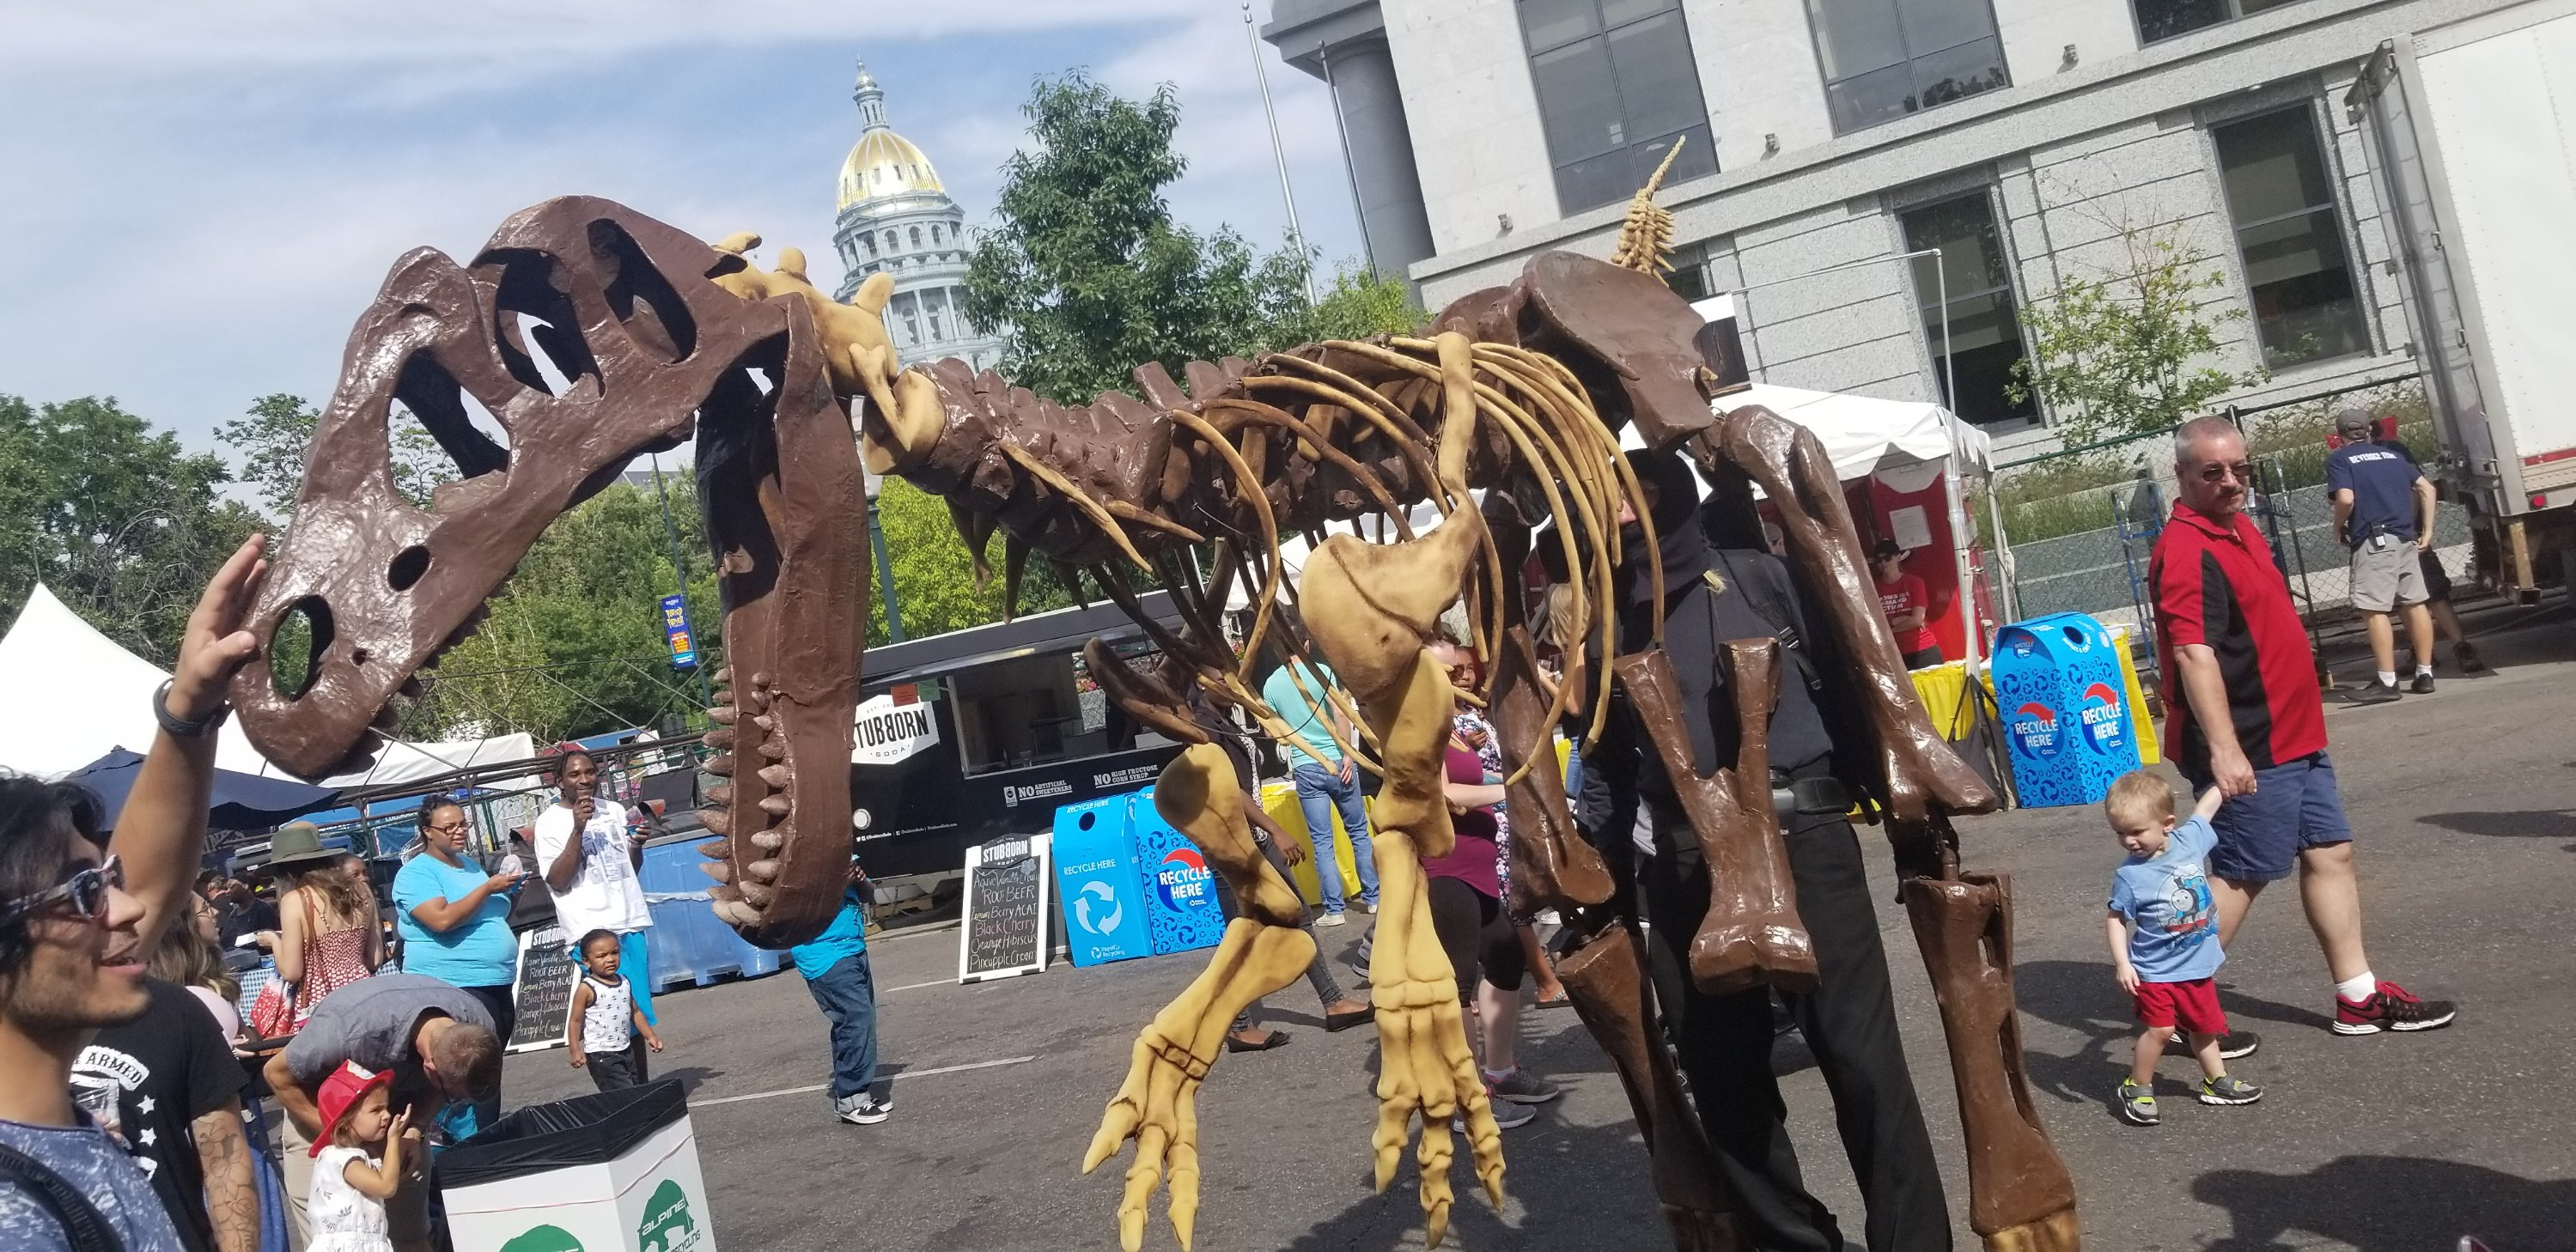 Taste of Colorado 2018 in downtown Denver on Sunday, September 2. Photo by: Matthew McGuire